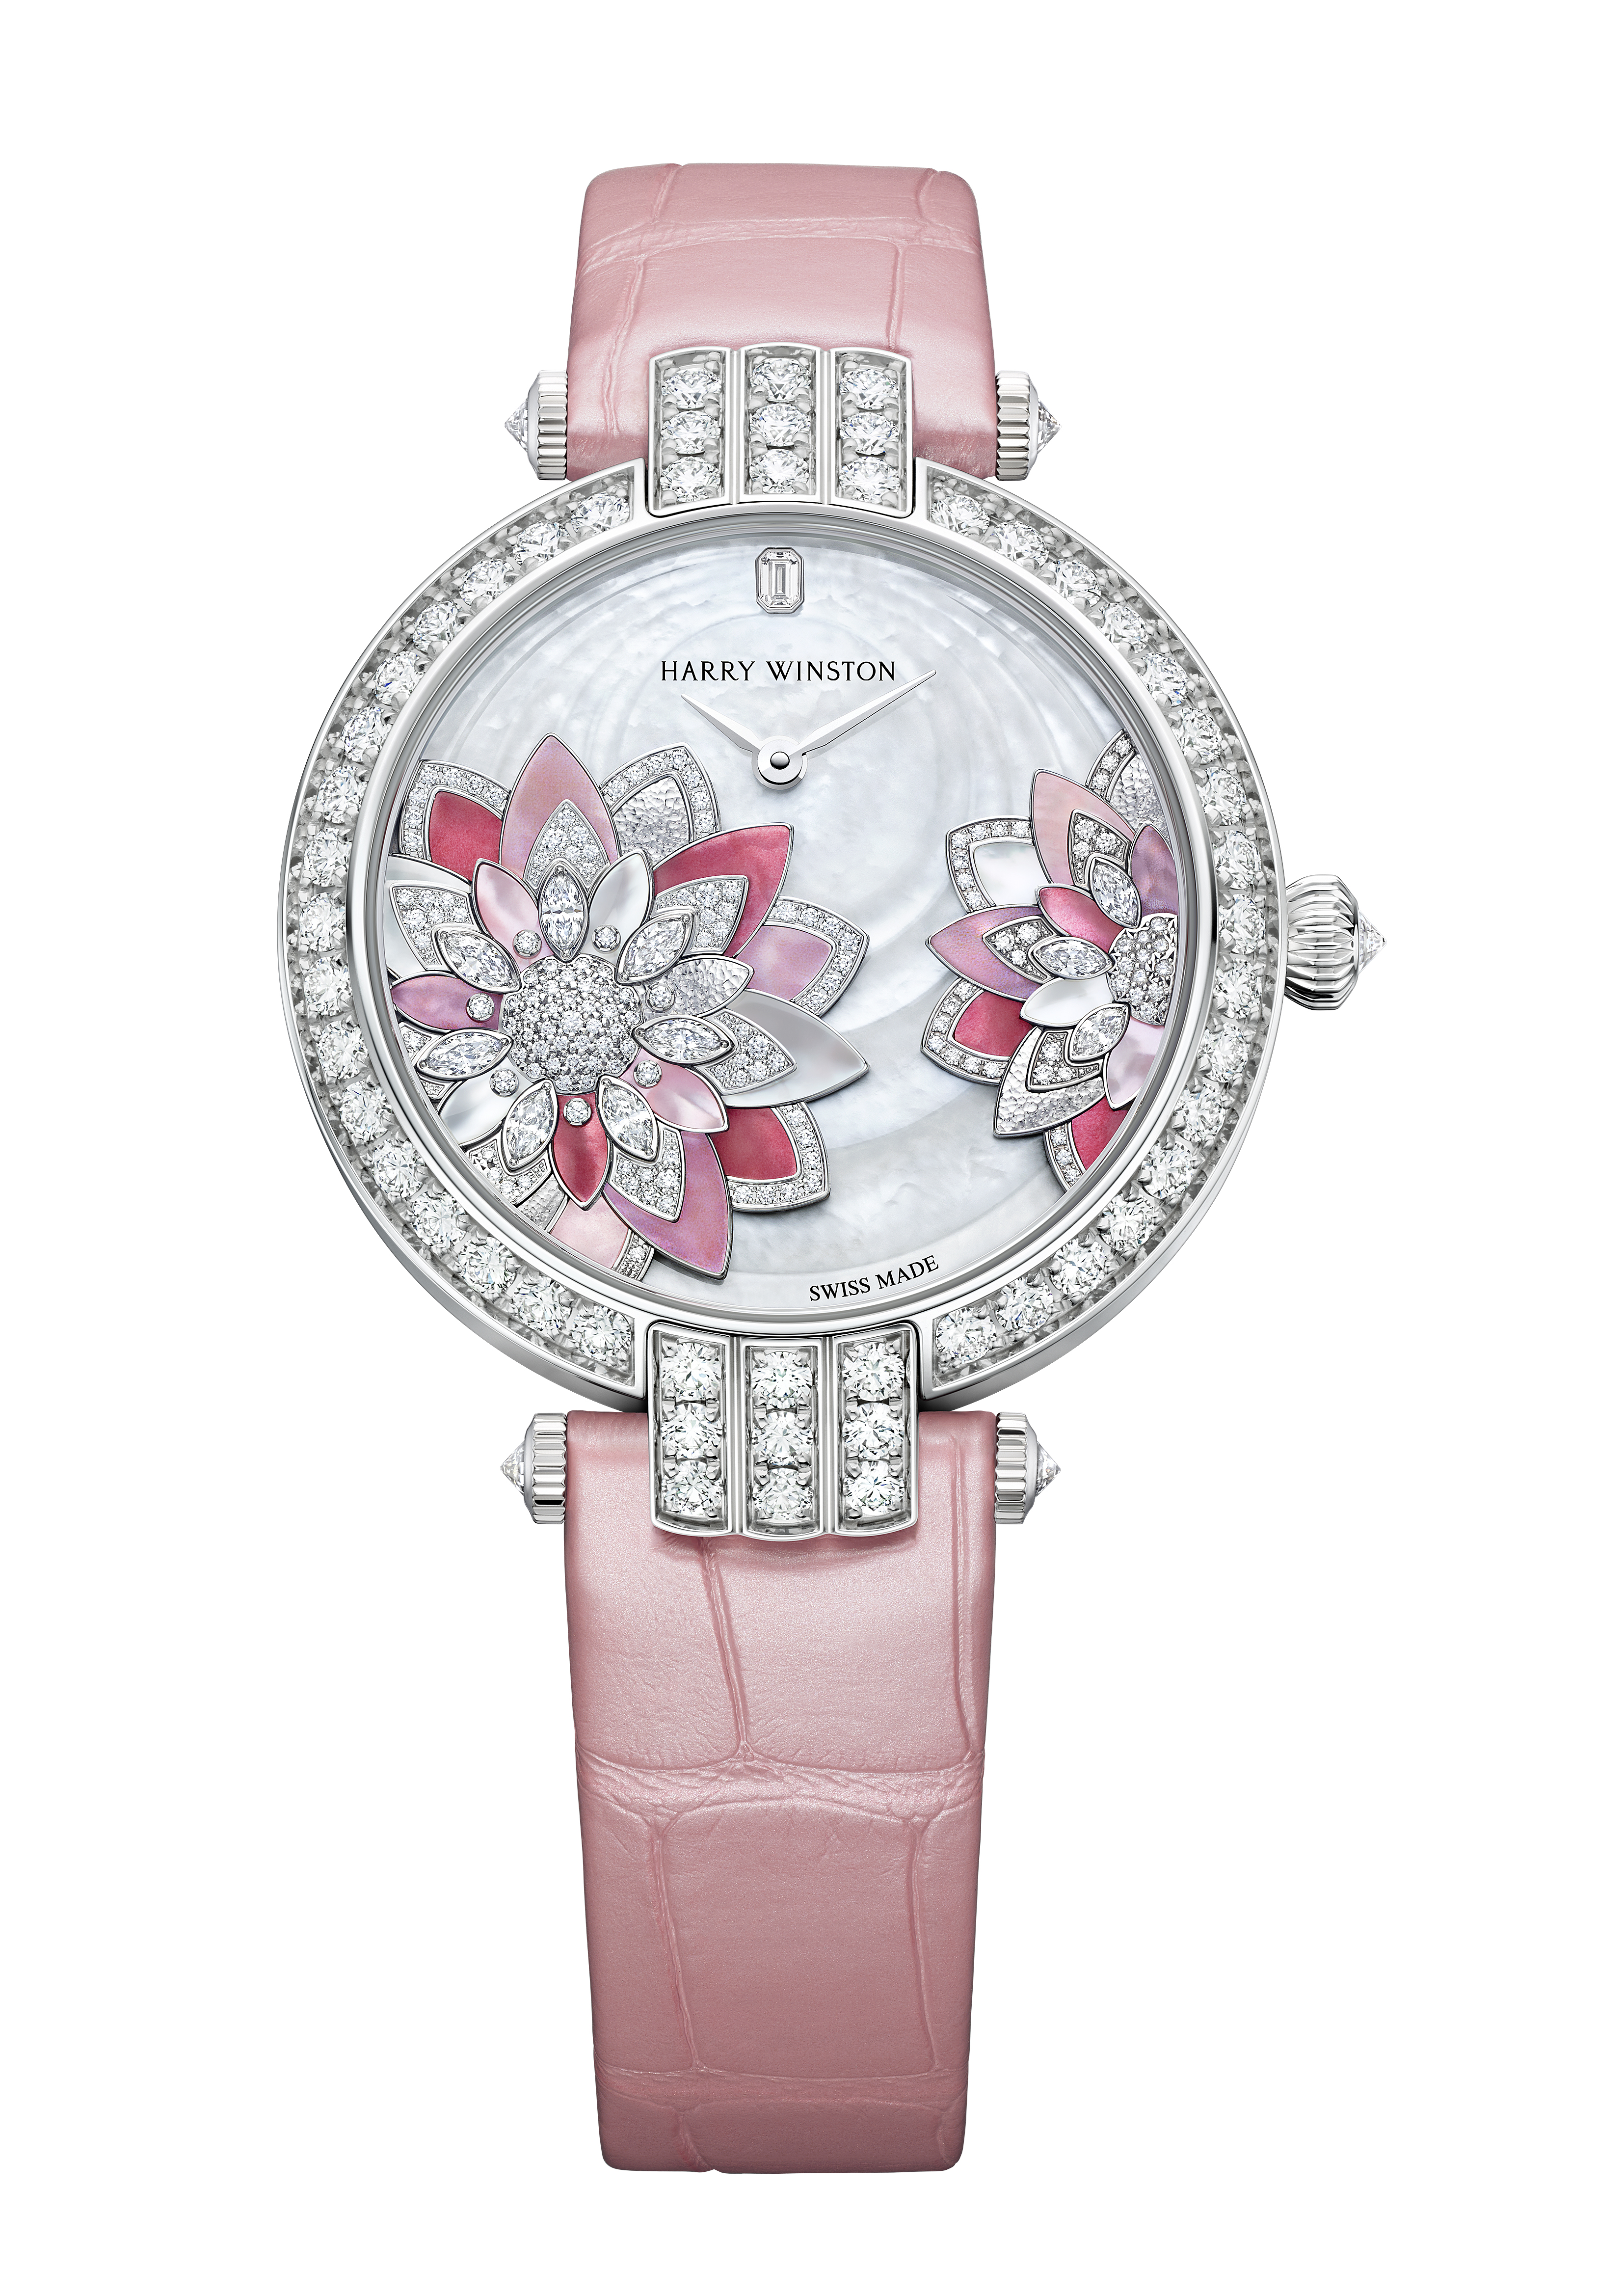 Harry Winston's new Premier Lotus Automatic 36mm timepiece